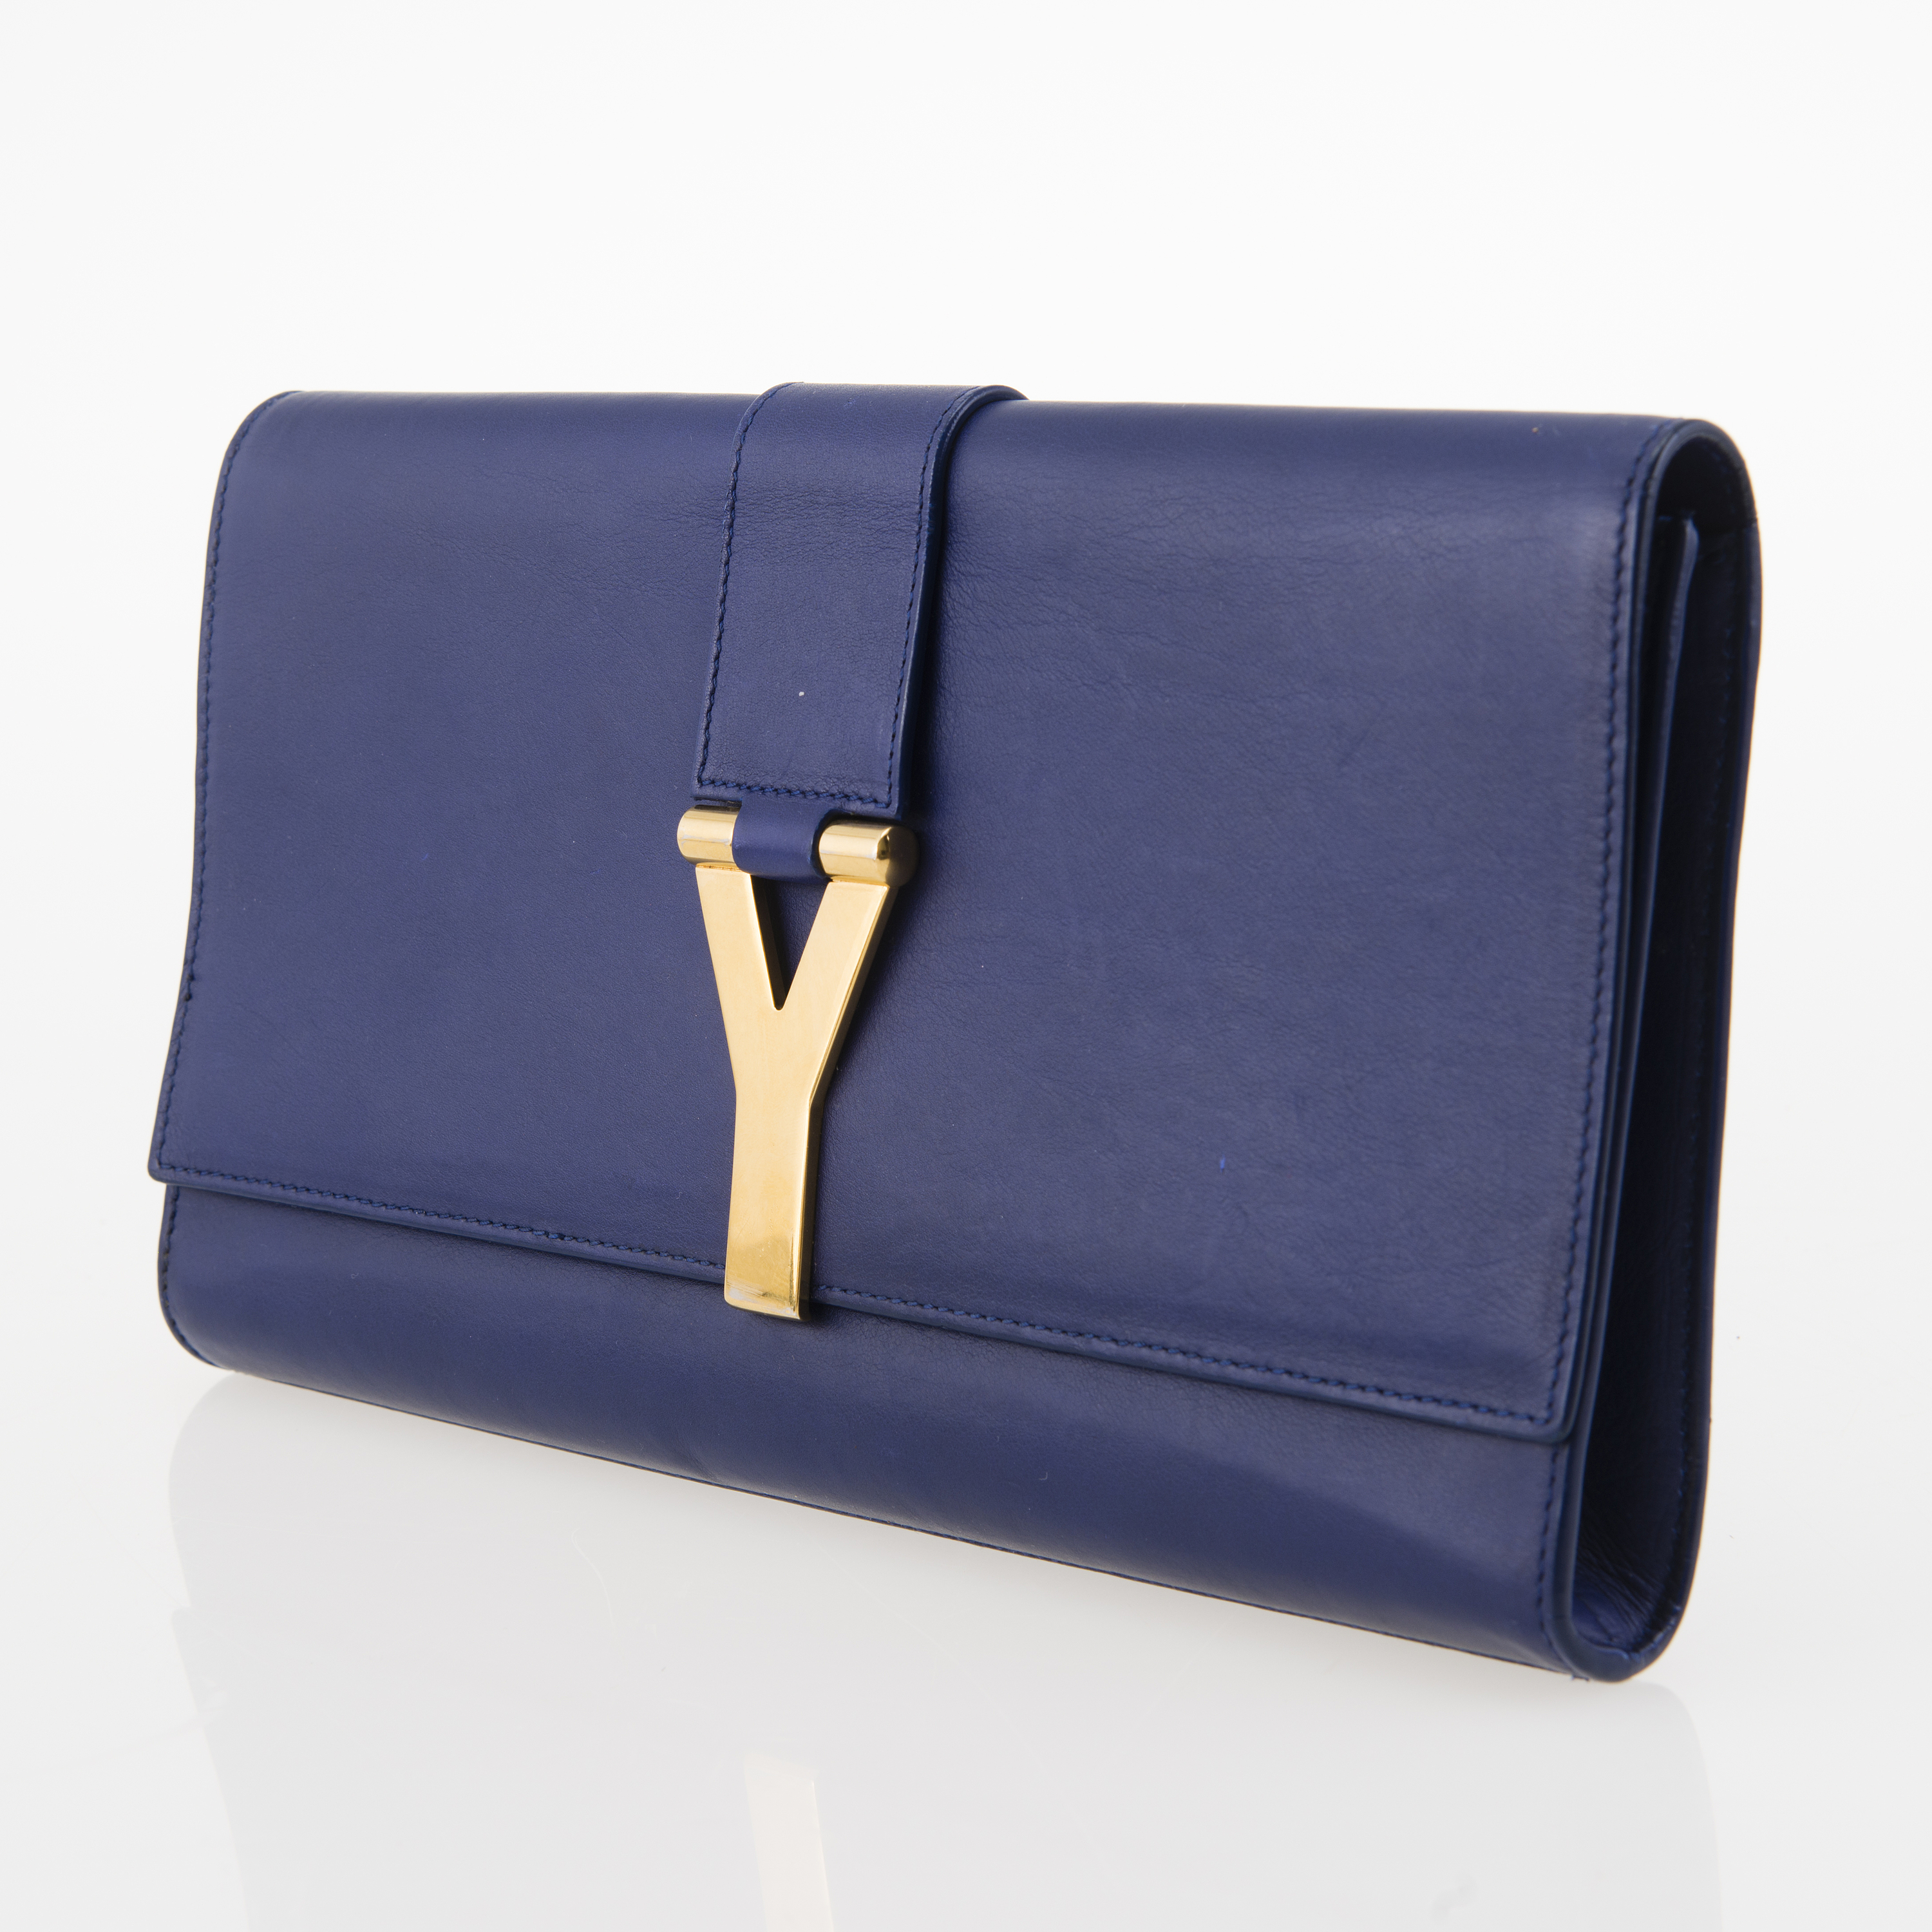 bf0d012dcf YVES SAINT LAURENT Chyc leather Clutch. - Bukowskis